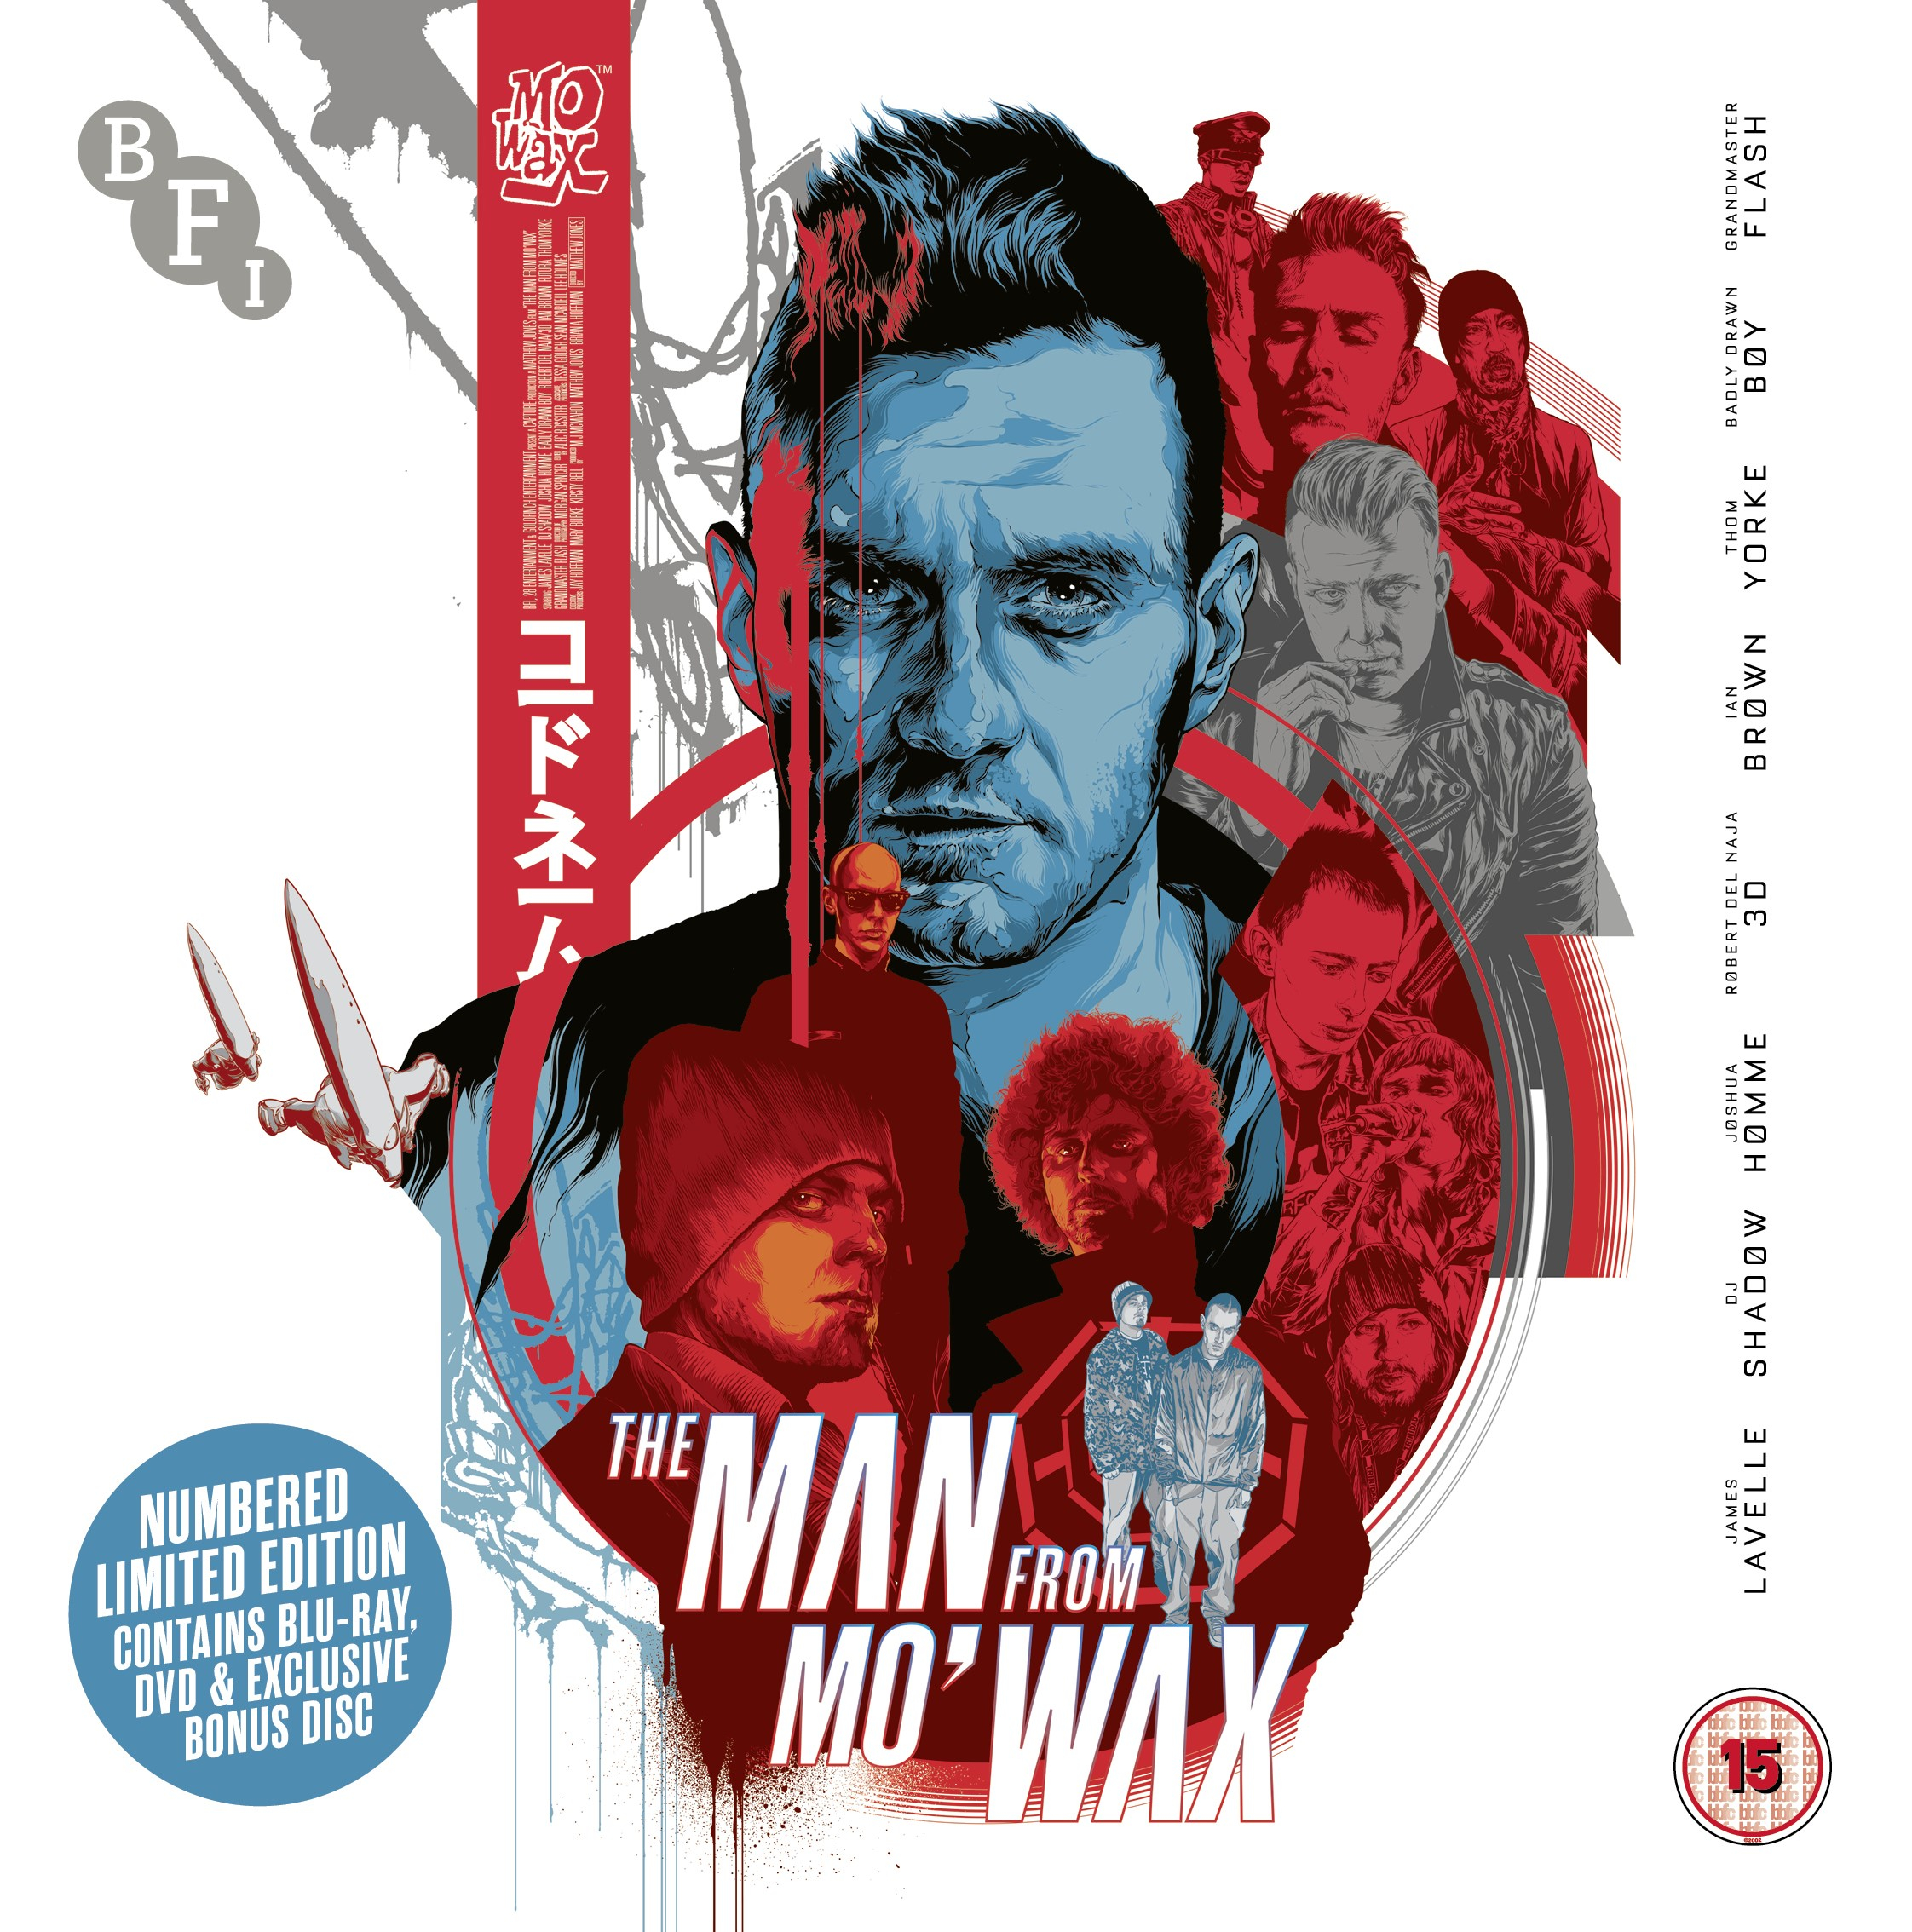 Buy PRE-ORDER The Man From Mo'Wax (Limited Edition DVD/Blu-ray set)